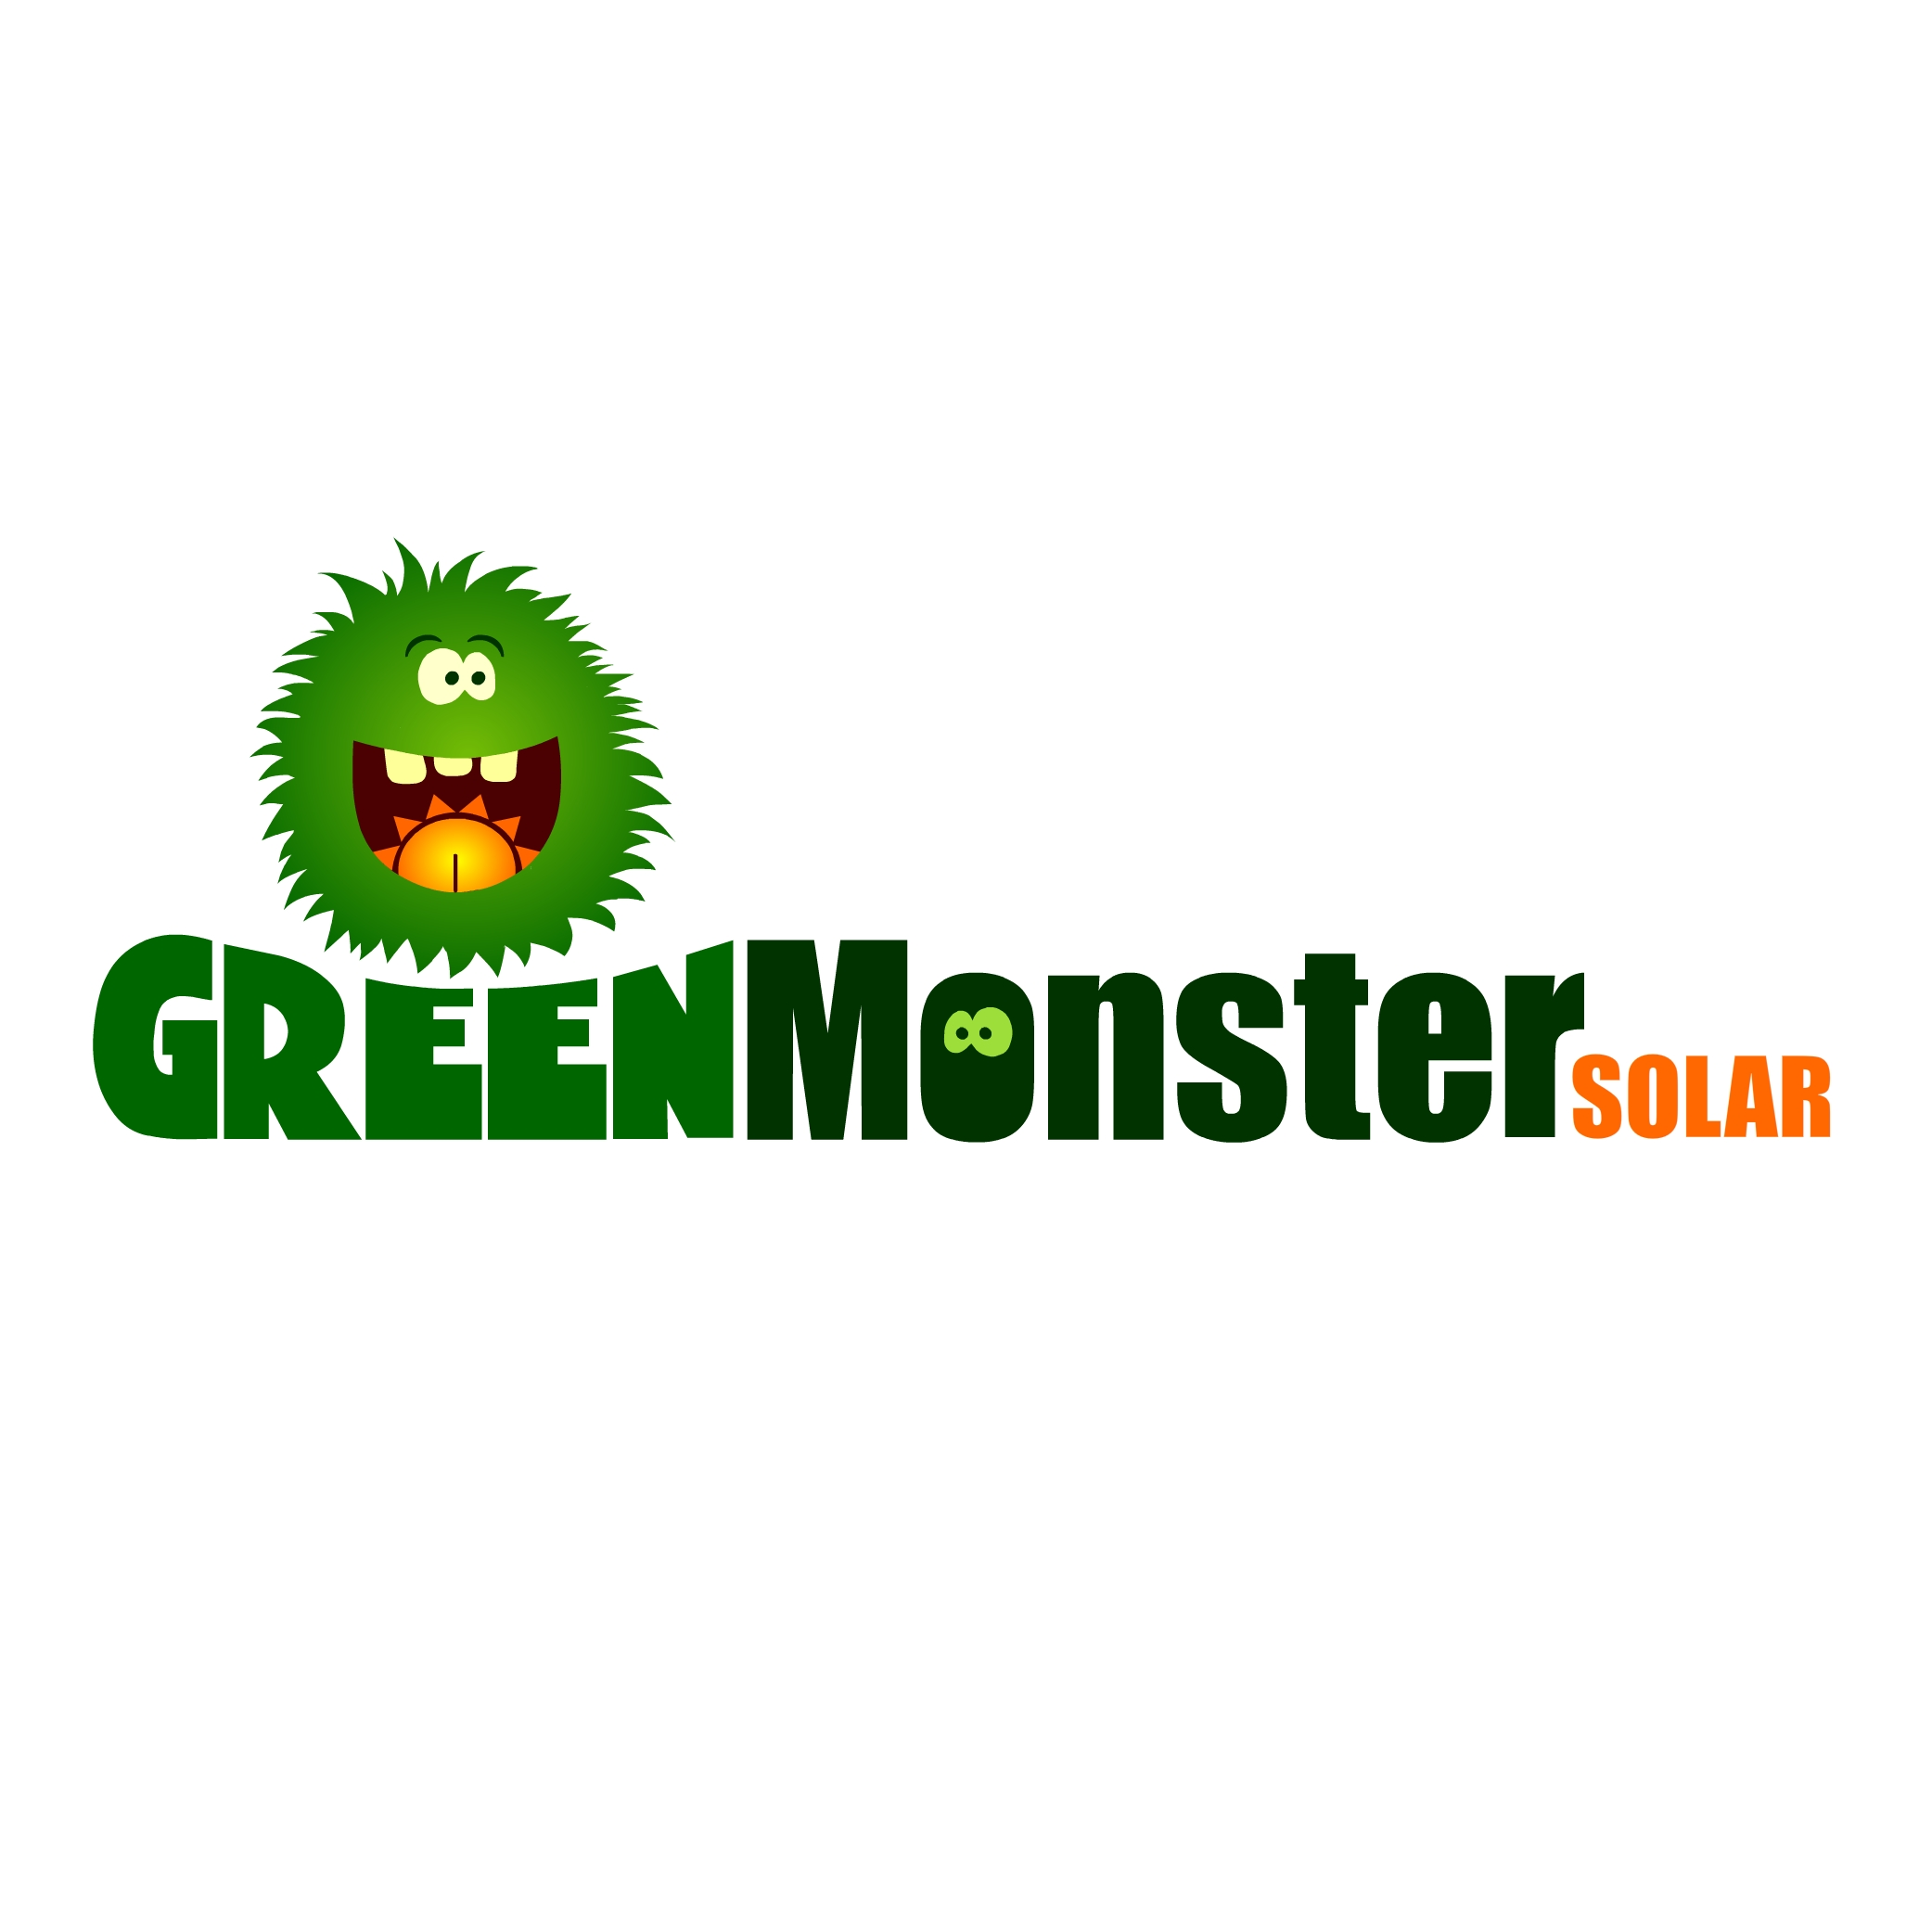 GREEN MONSTER SOLAR